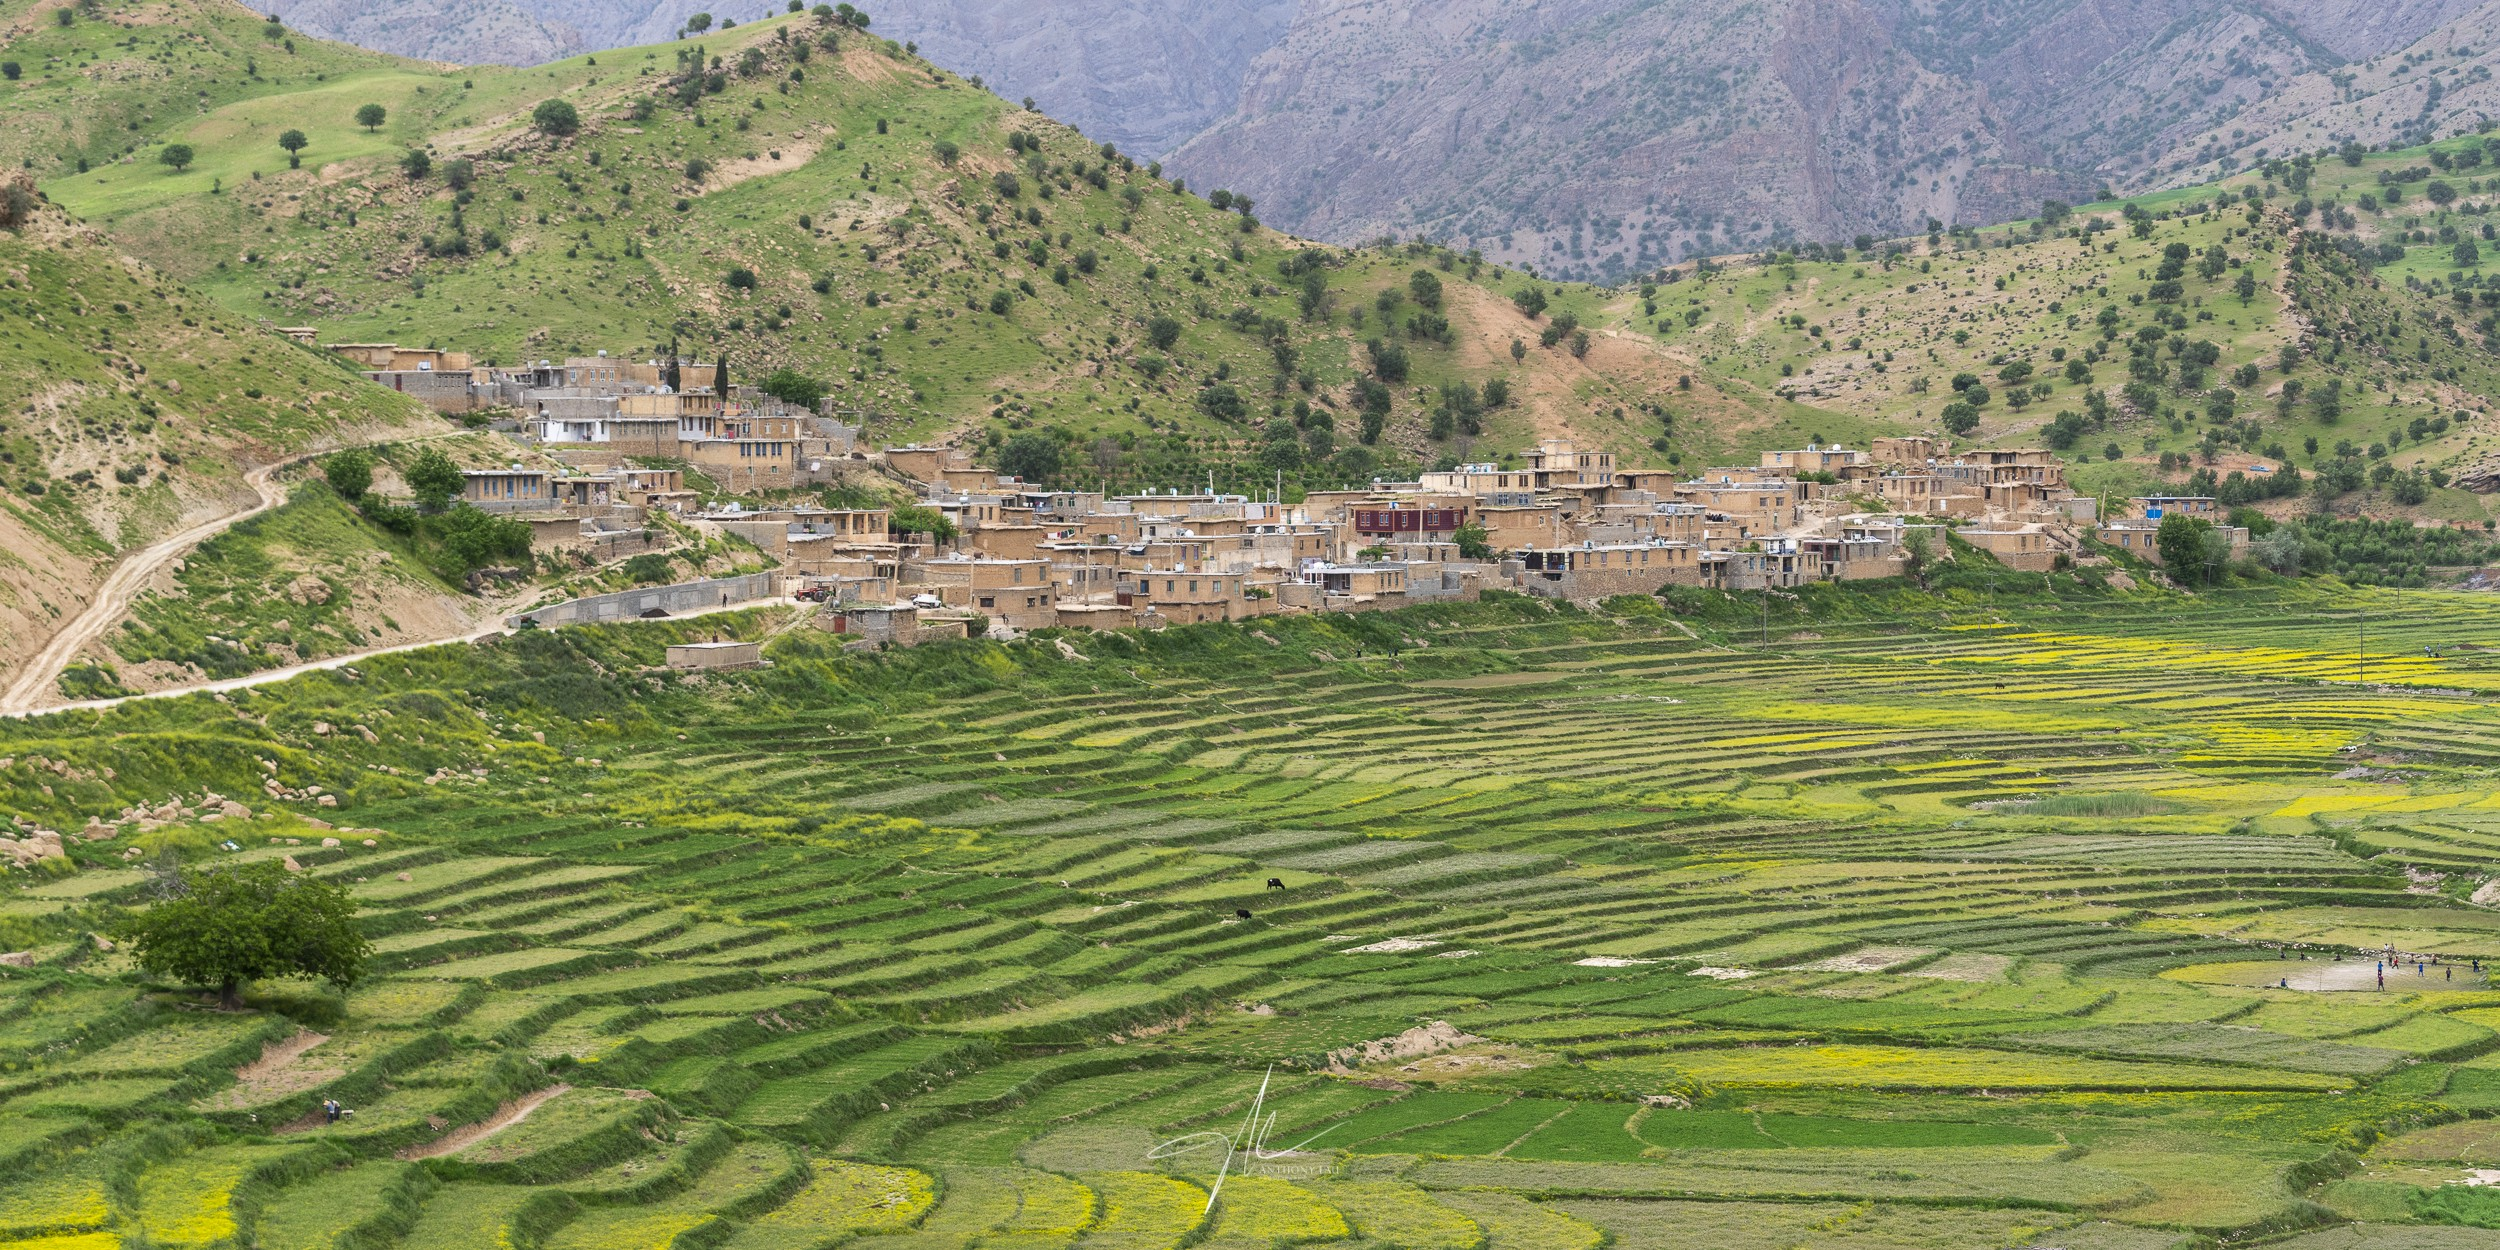 A quiet Iranian settlement located besides a huge terraced rice field valley in the Zagros Mountains.